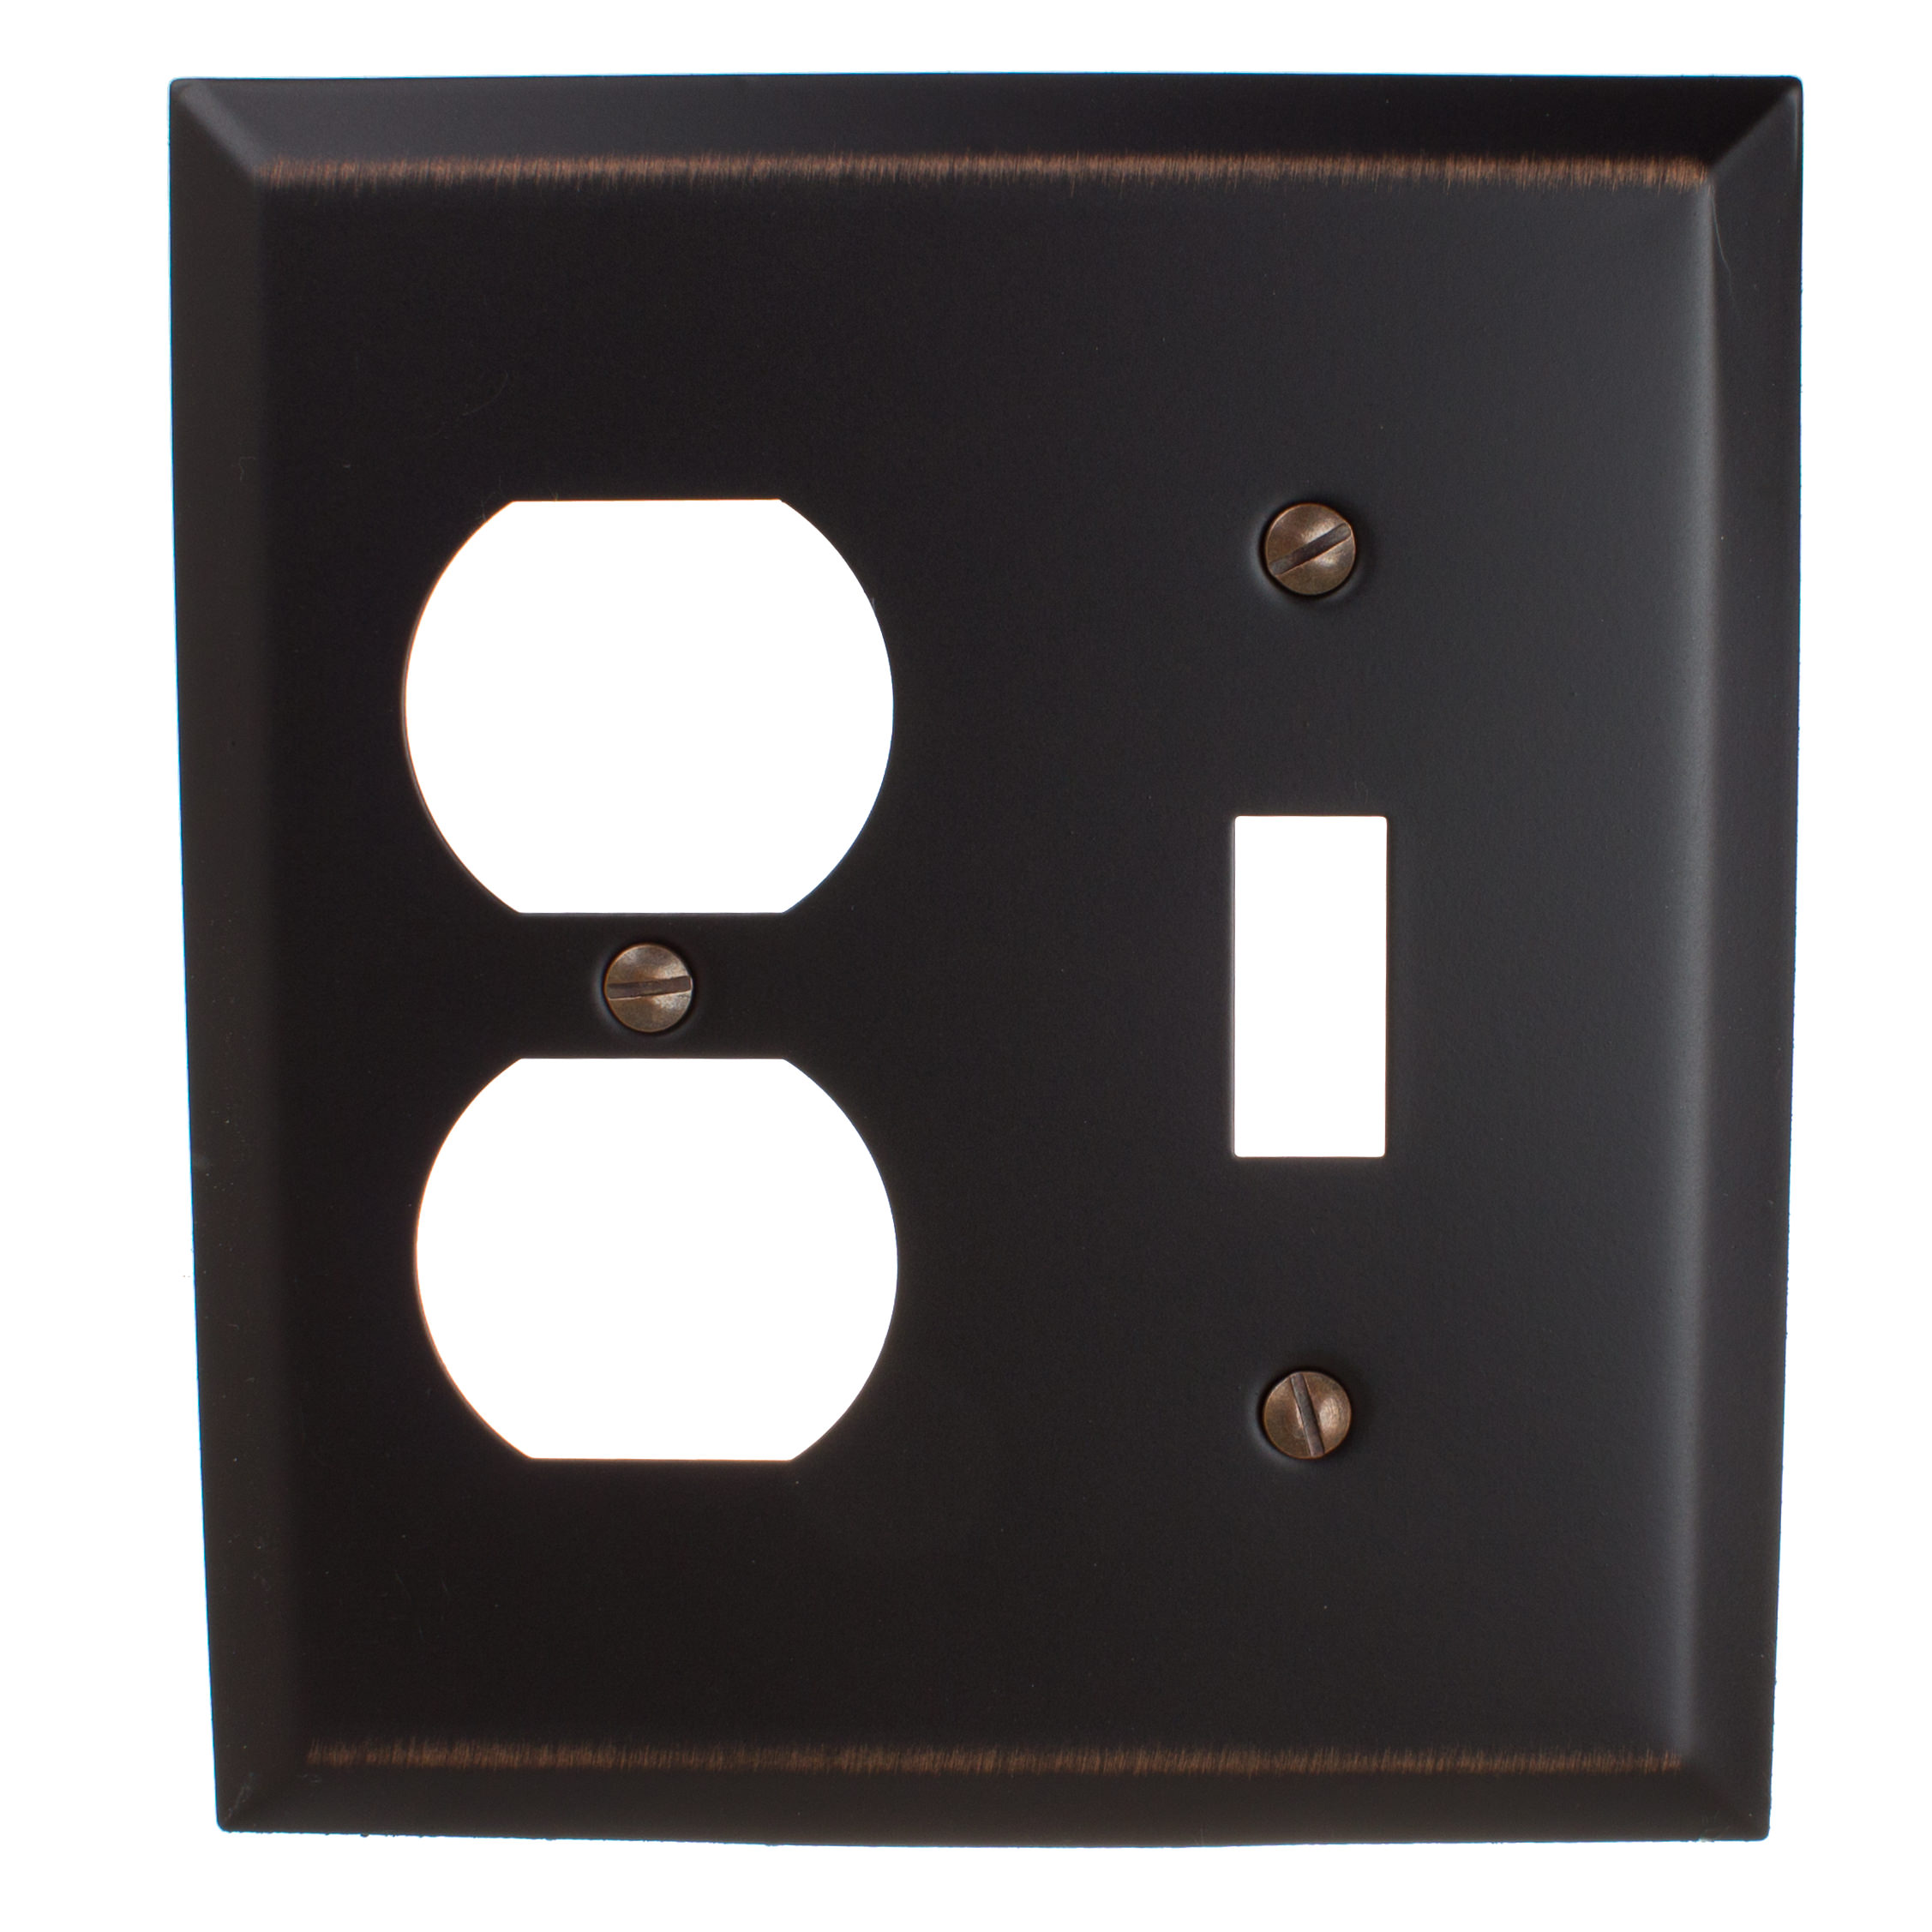 GlideRite Hardware Light Switch and Duplex Outlet 2-Gang Beveled Edge Combination Wall Plate Cover, Brushed Nickel